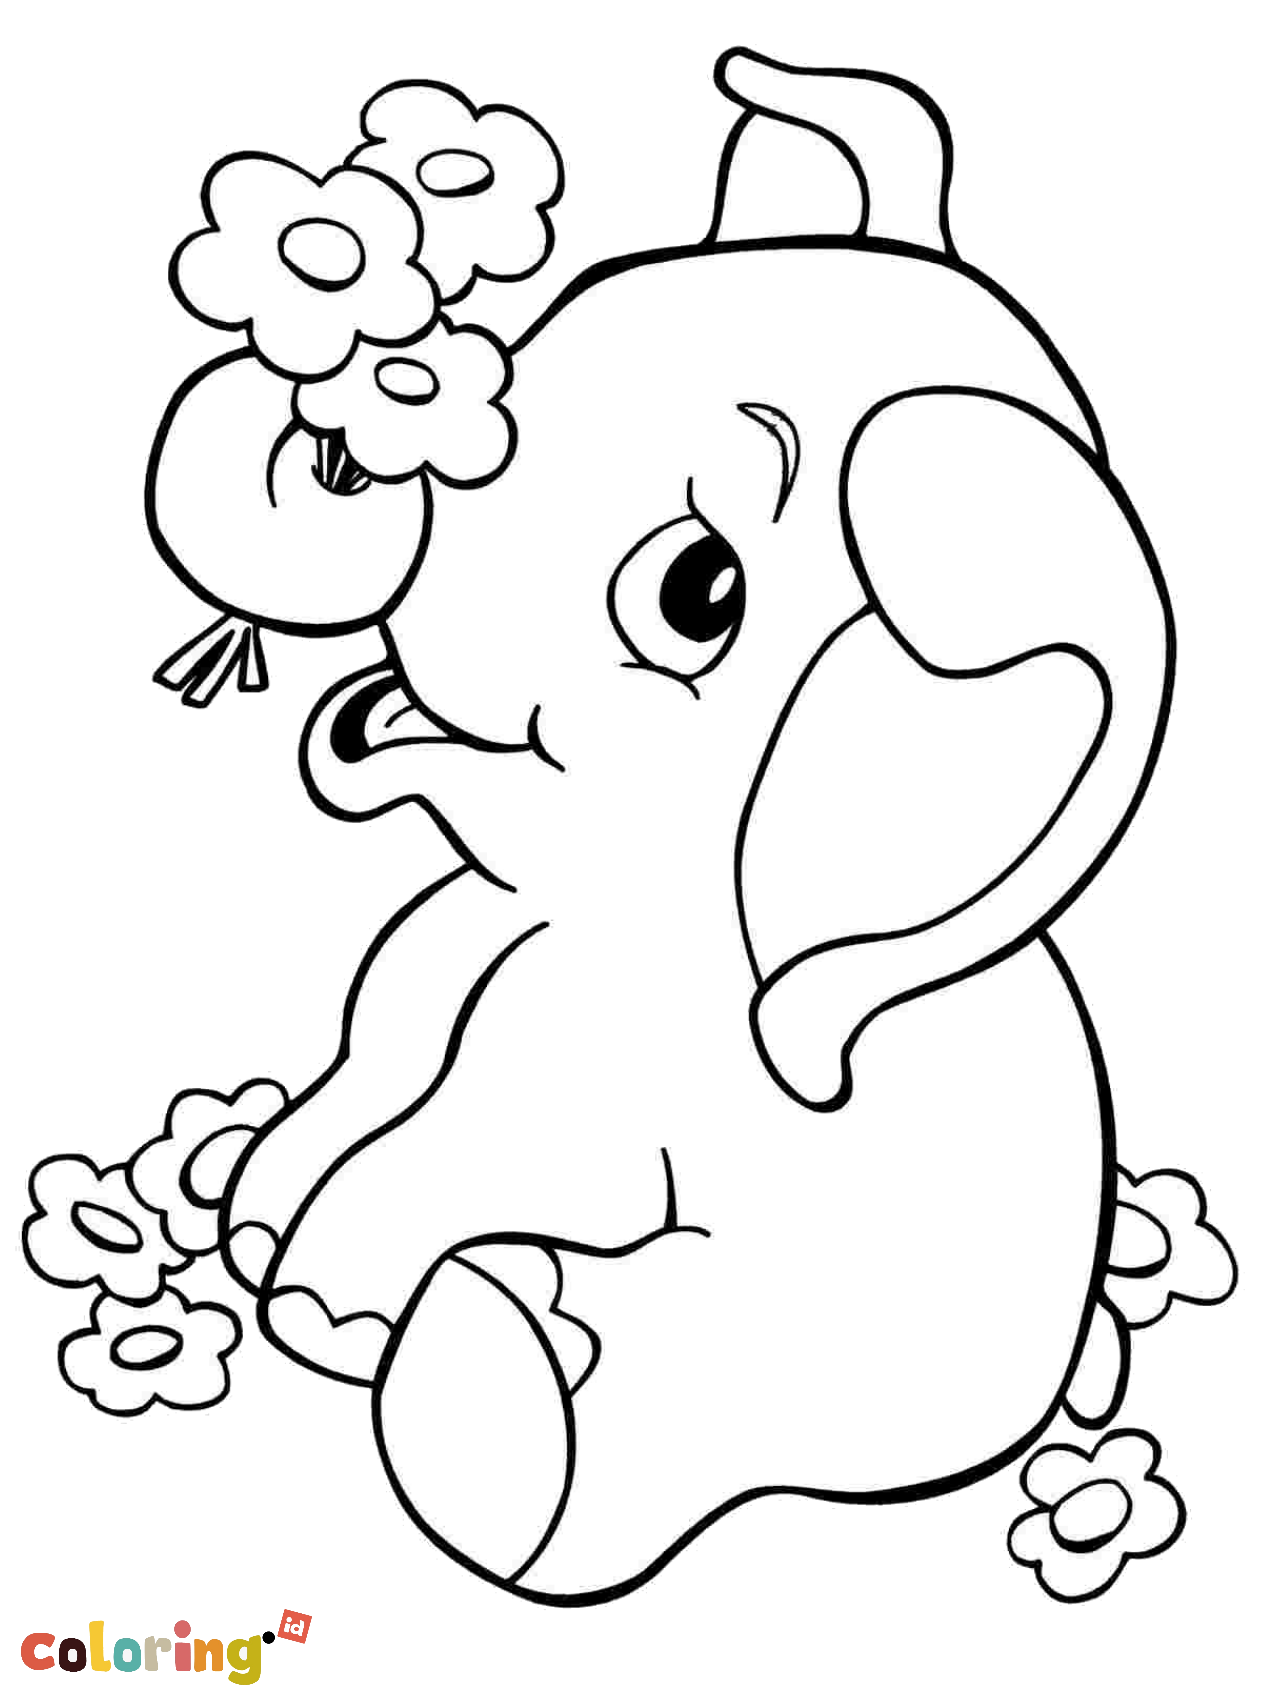 Cute Baby Elephant Coloring Page - Color #2692264 - PNG ...